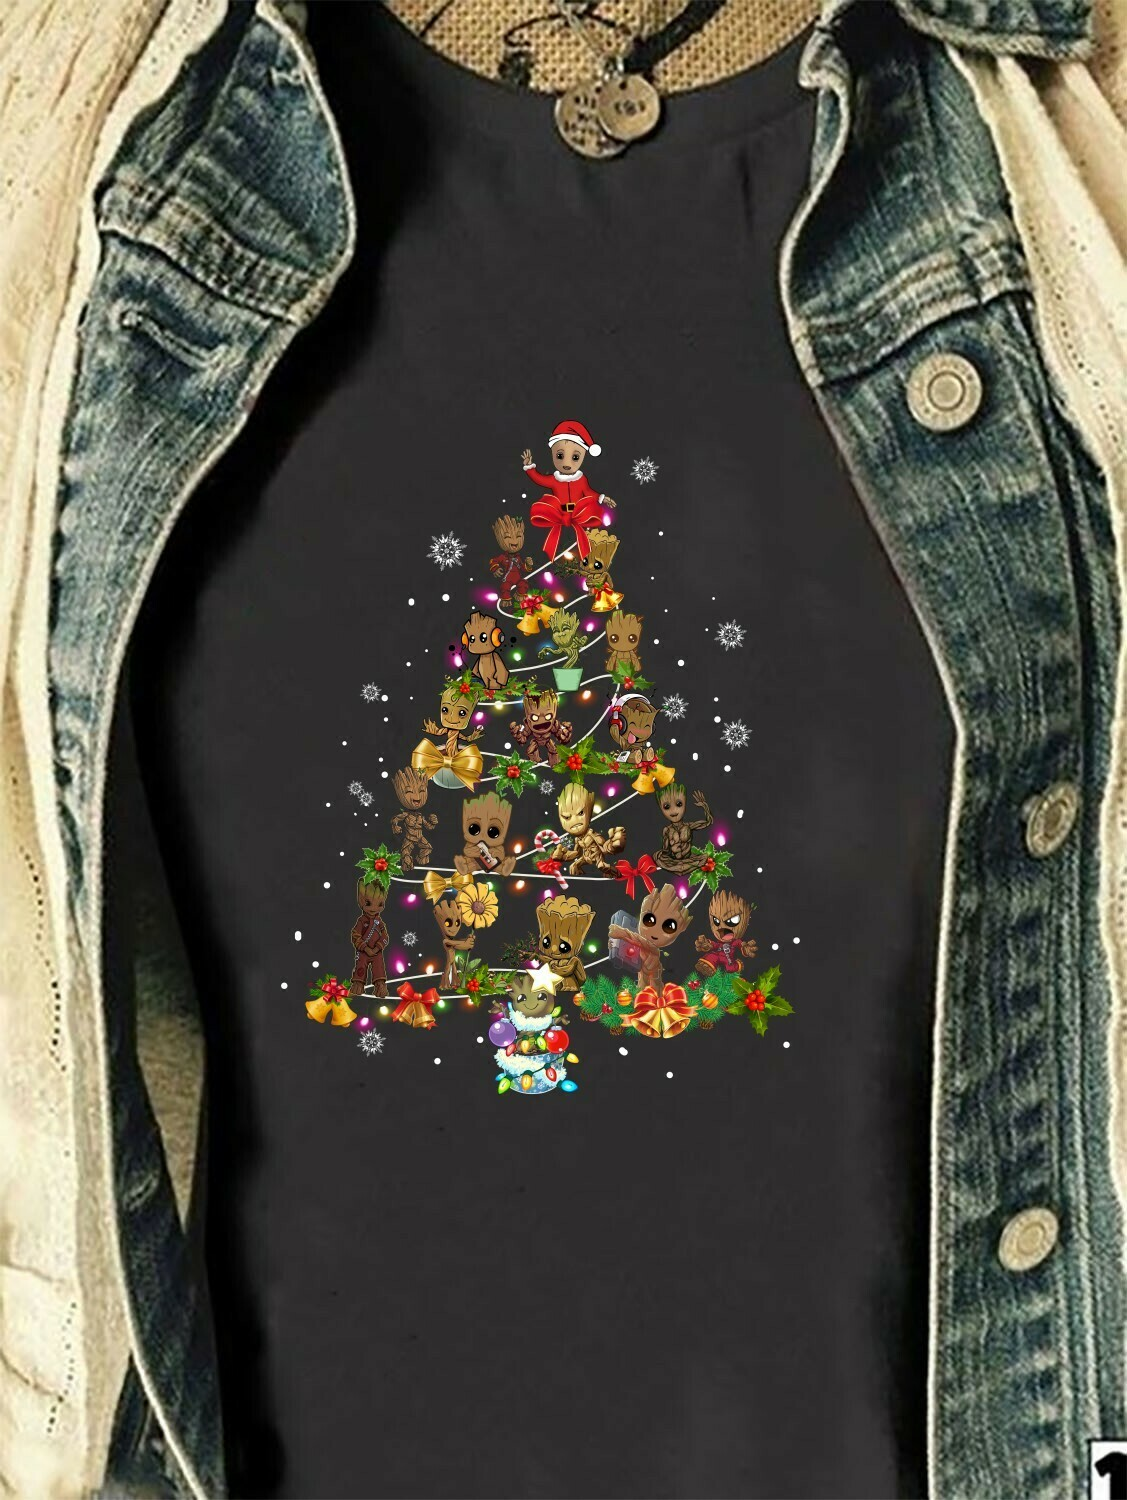 Baby Groot Guardians of the Galaxy Christmas Tree The Mandalorian Ugly Christmas Darth Vader Stromtrooper Boba Party Disney Villains Shirt Long Sleeve Sweatshirt Hoodie Jolly Family Gifts